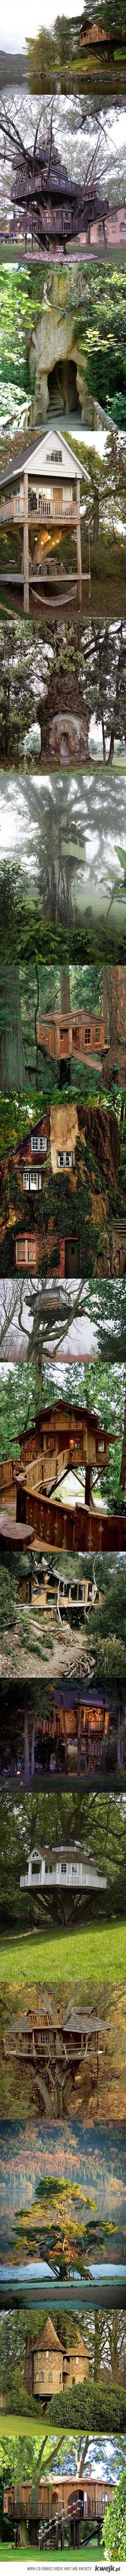 Tree houses.  Pretty sure the second one is here in Minneapolis.